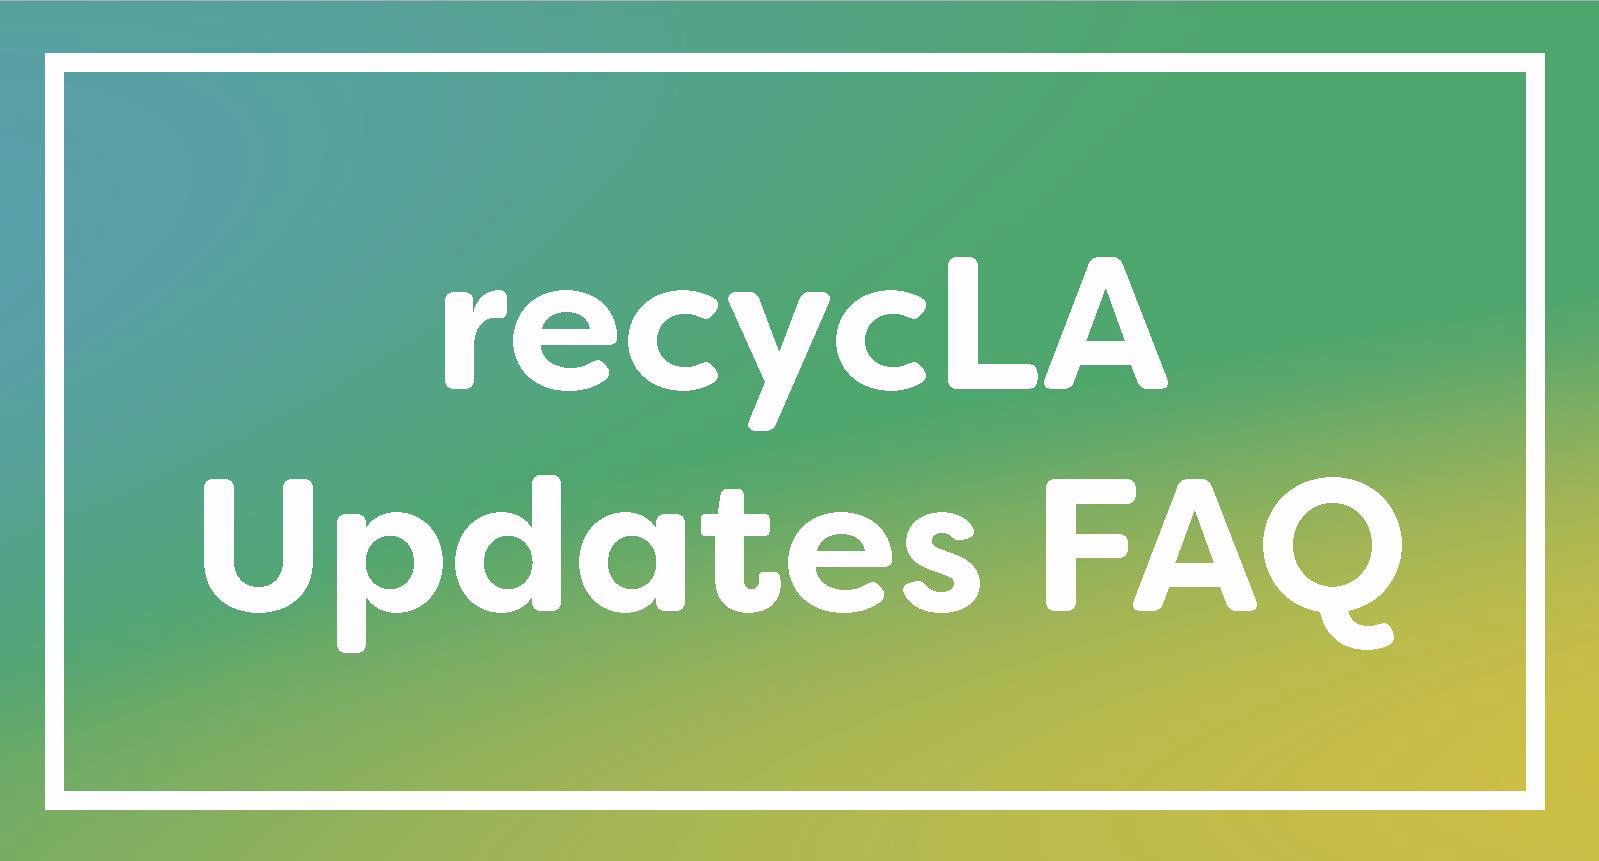 recycLA Updates FAQ